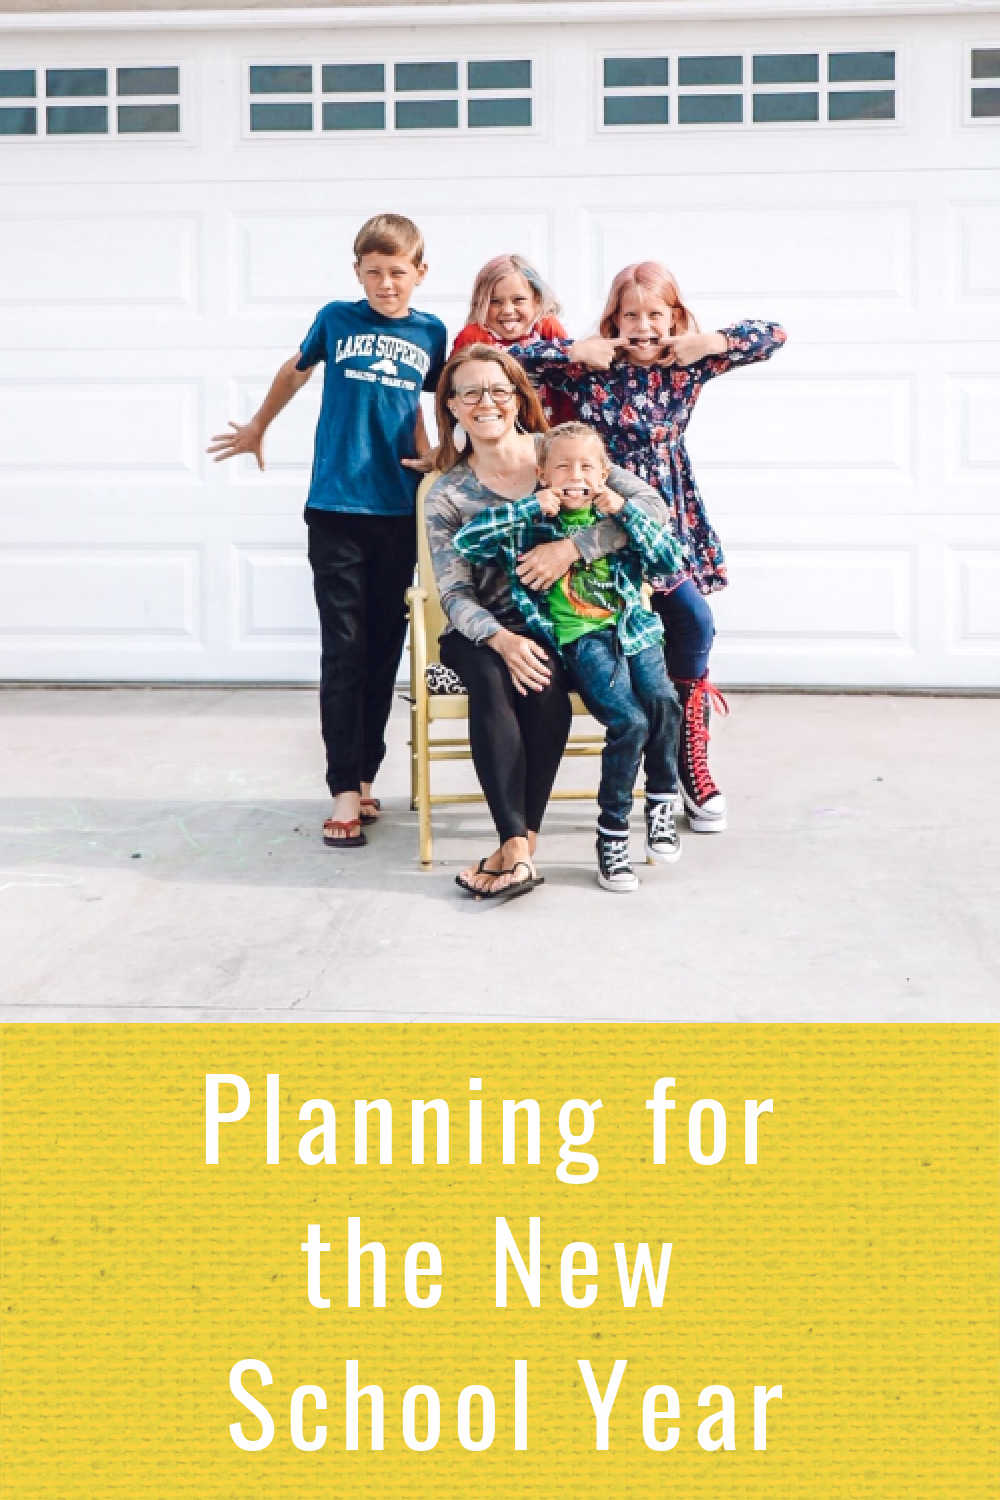 Planning for the new school year (covid or not) means balance and flexibility are the keys. These 5 tips helped me stay positive about the new school year for my kids.